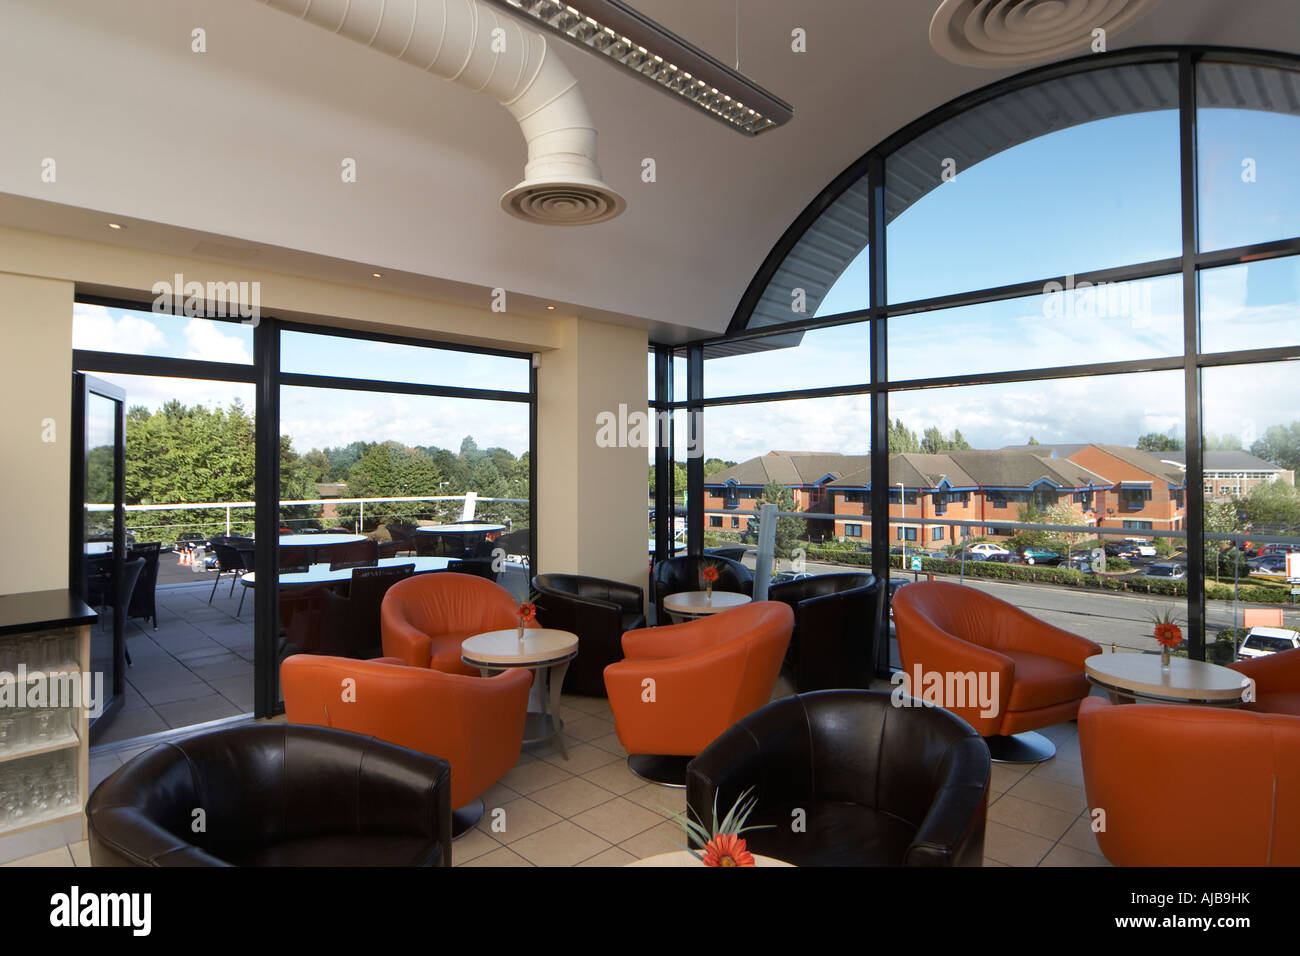 office seating area. Seating Coffee Area In Modern Office Building For Staff With Orange And Black Chairs View Through Window T